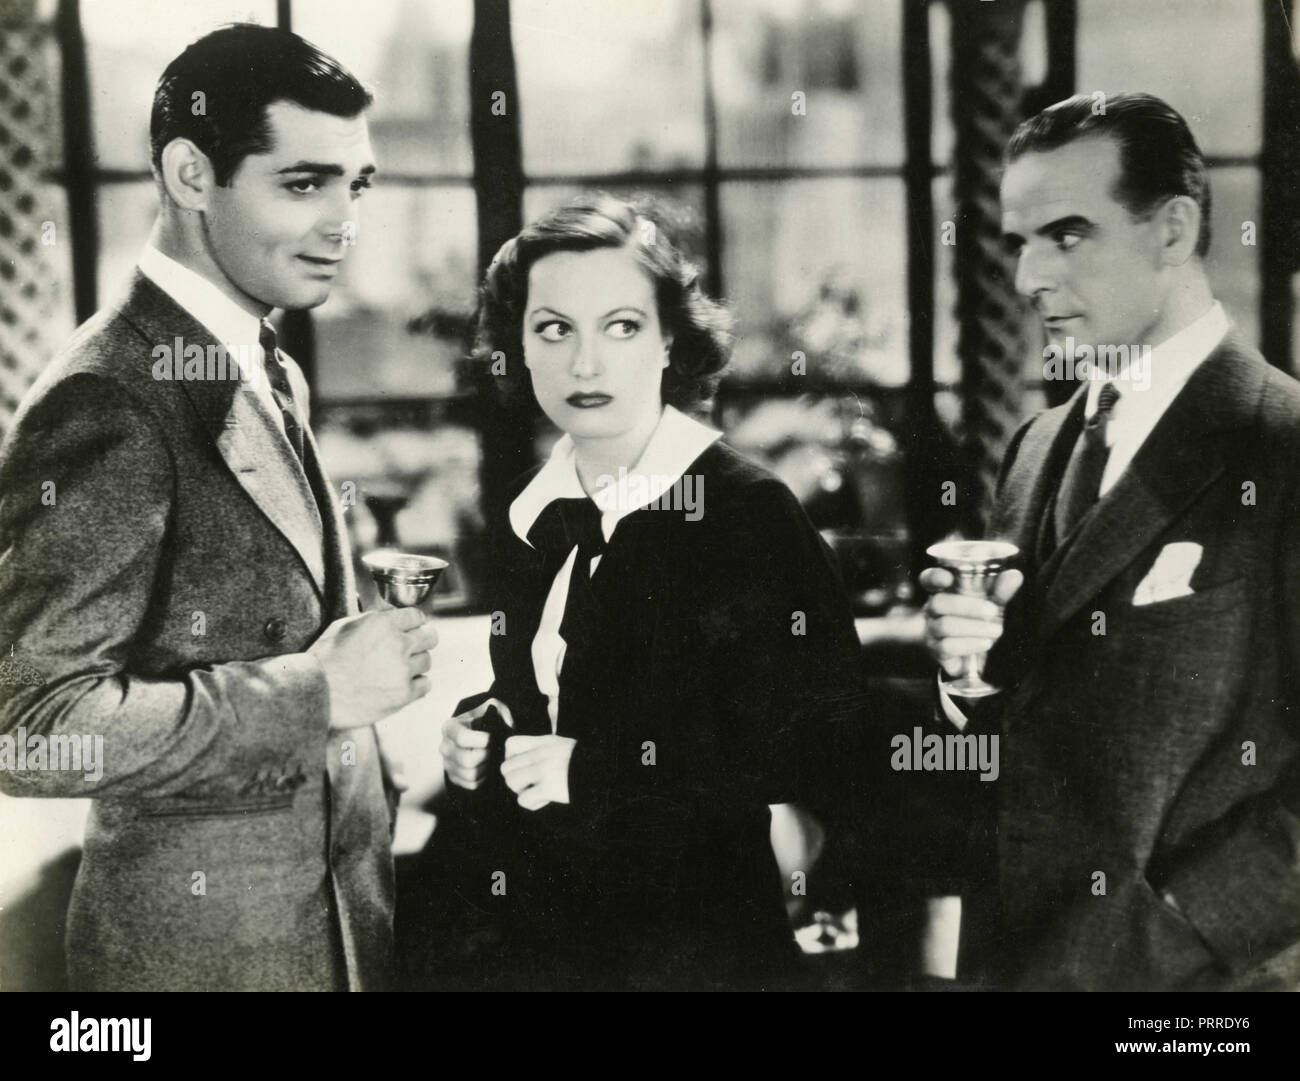 Actors Joan Crawford, Franchot Tone, and Clark Gable in the movie Dancing Lady, USA 1933 - Stock Image